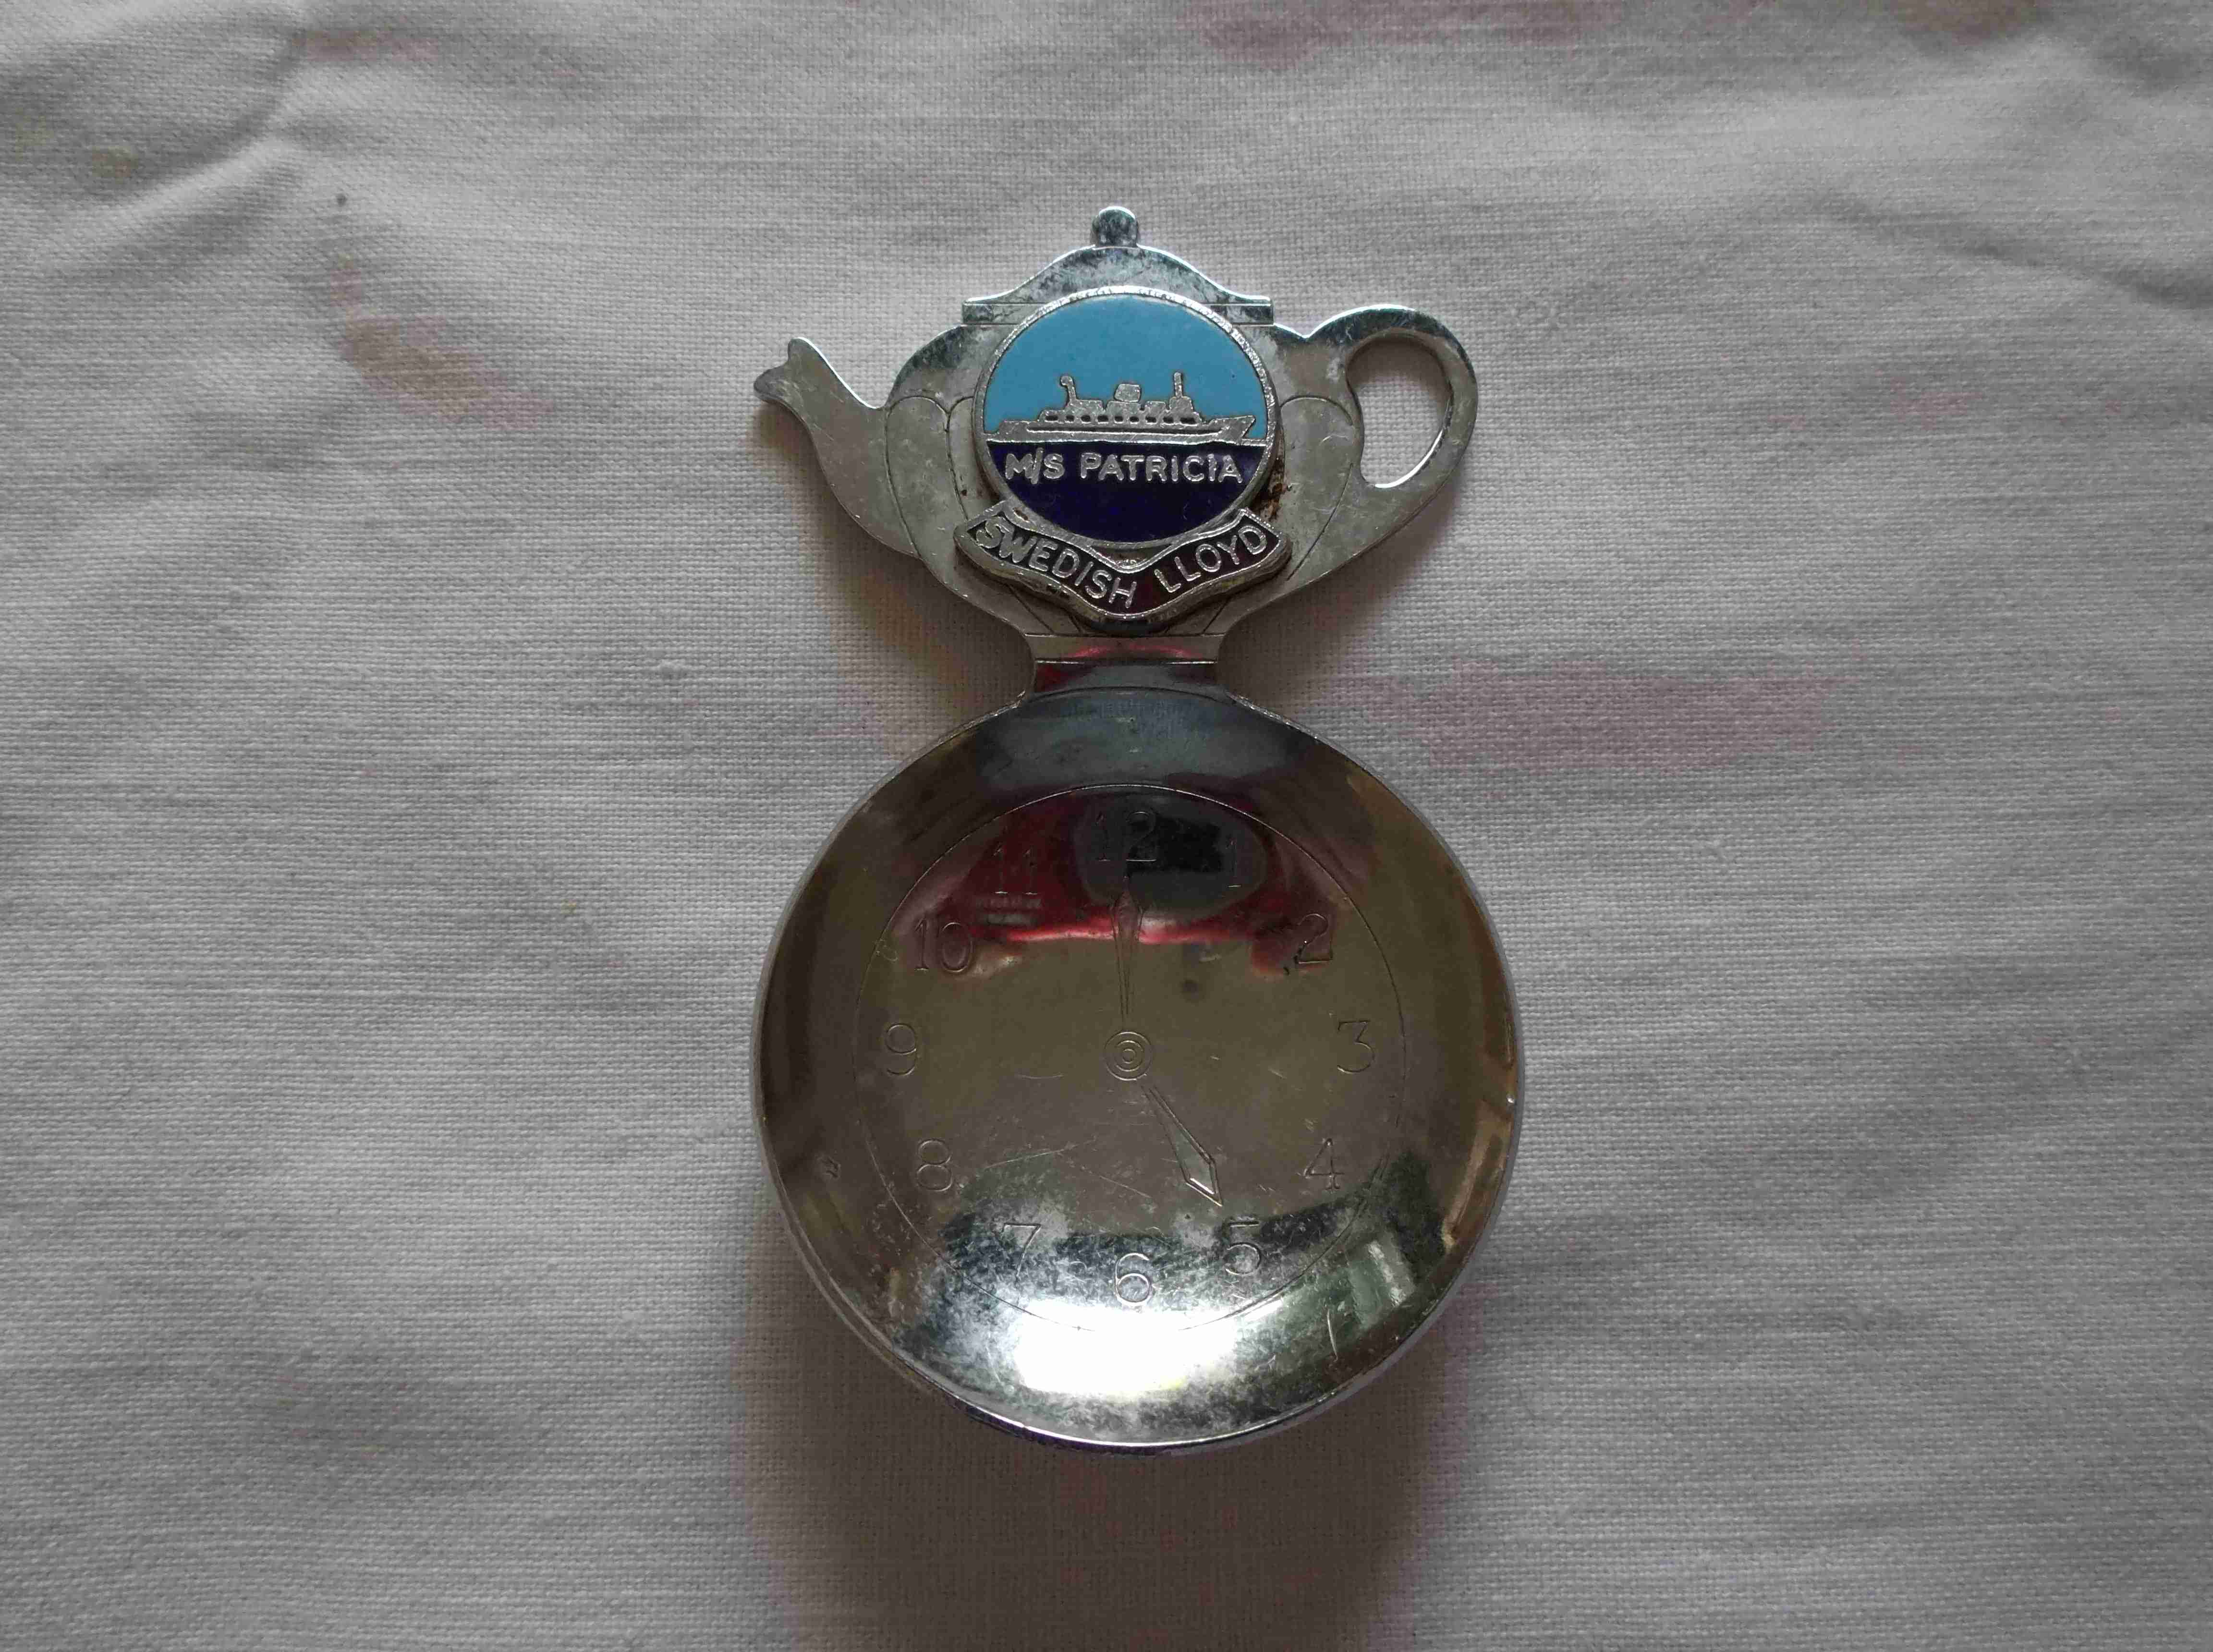 SOUVENIR TEA CADDY SPOON FROM THE SWEDISH LLOYD VESSEL THE M/S PATRICIA